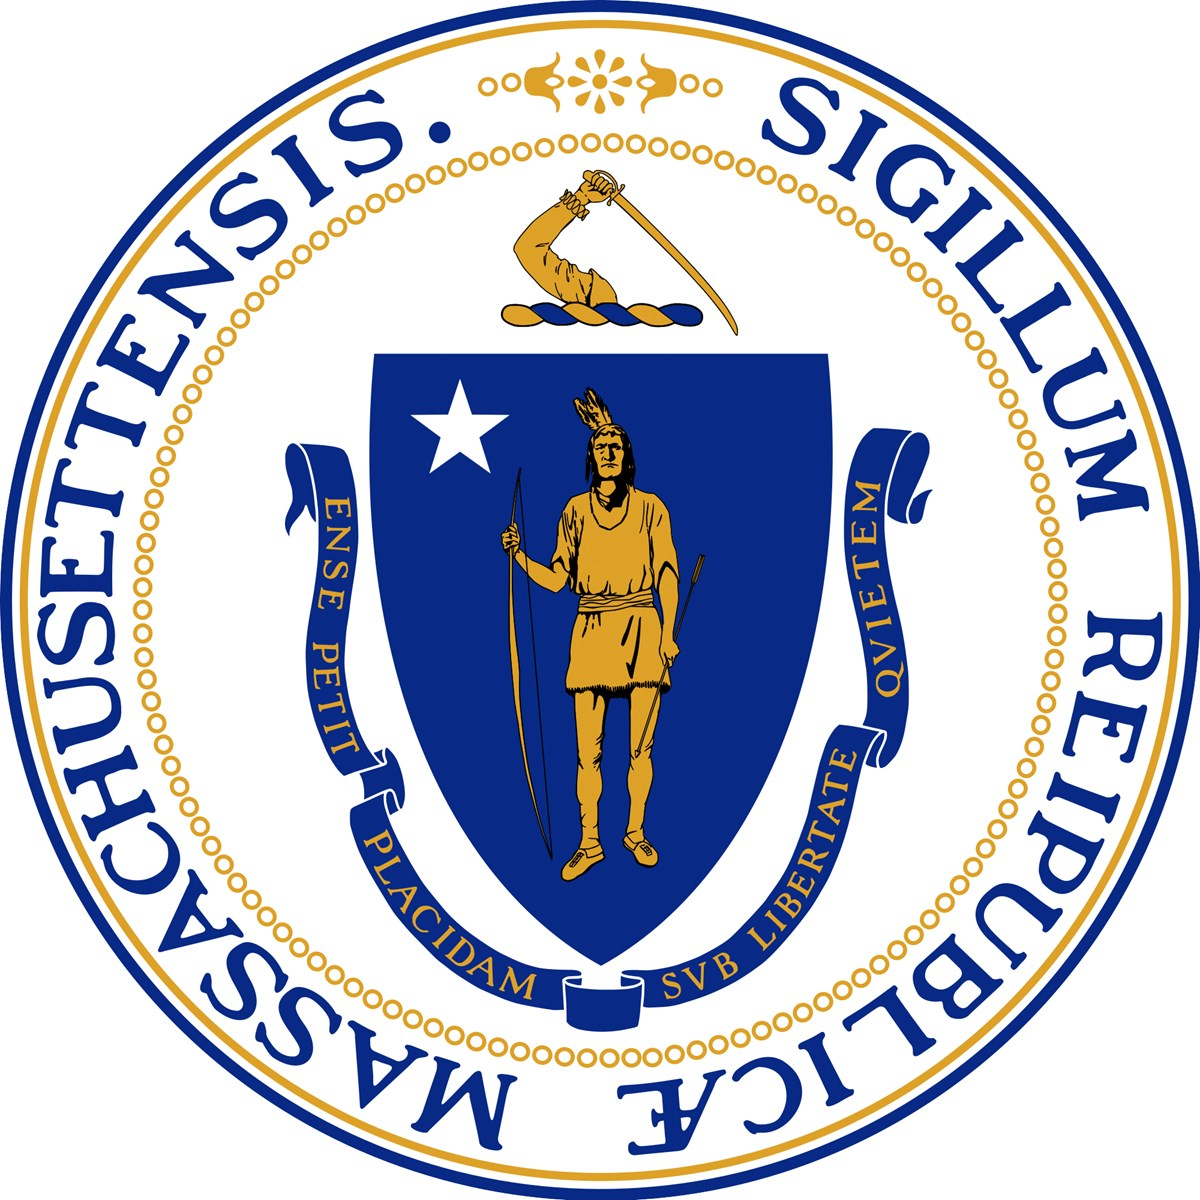 The Commonwealth of Massachusetts seal